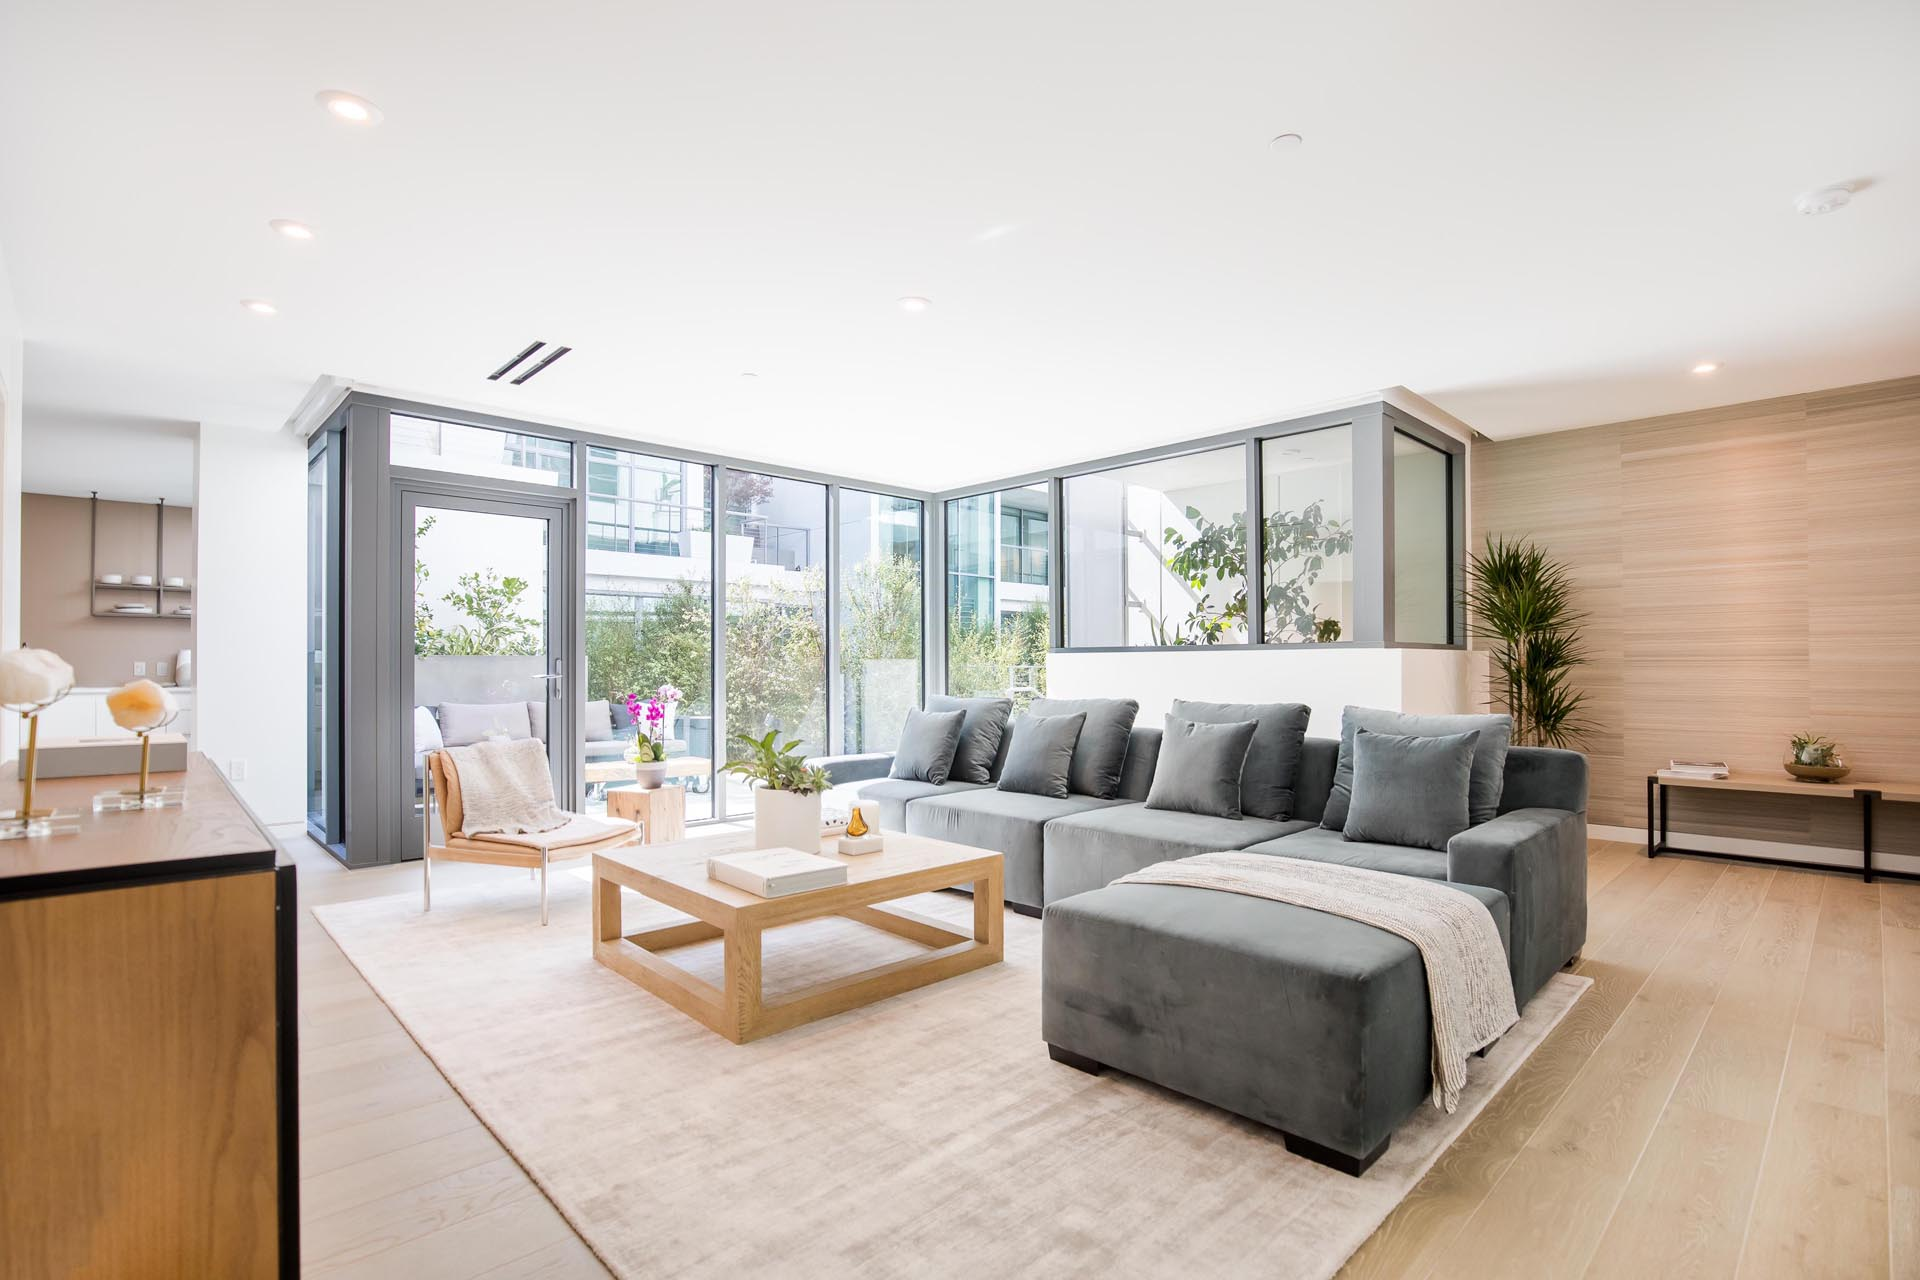 A modern living room with gray sofa.